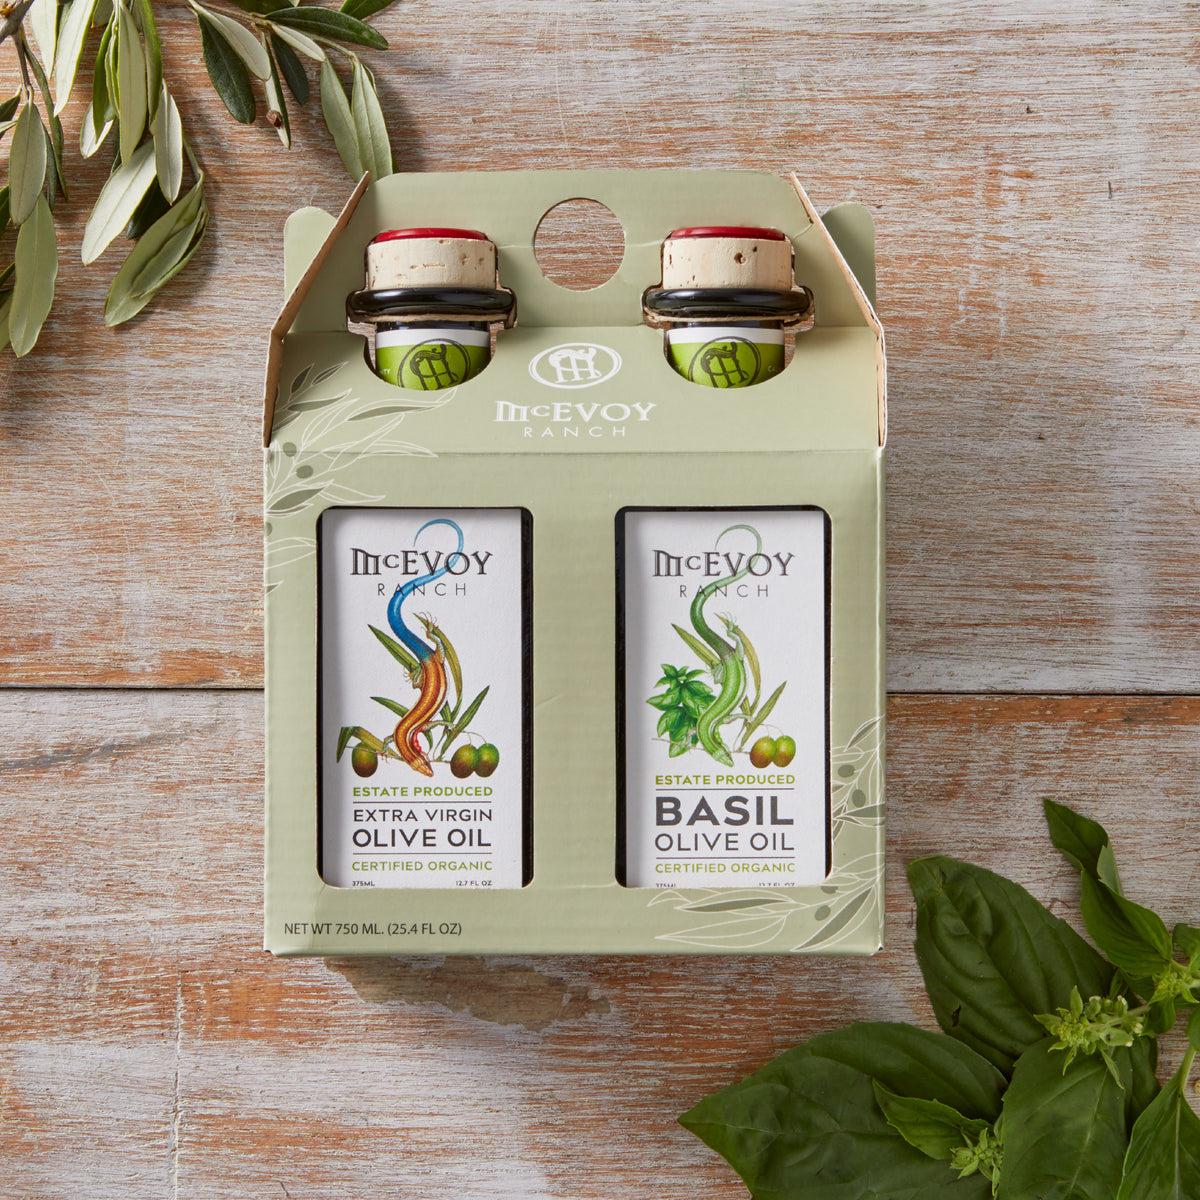 Traditional Blend Two Pack Traditional Blend Extra Virgin Olive Oil/Basil Olive Oil